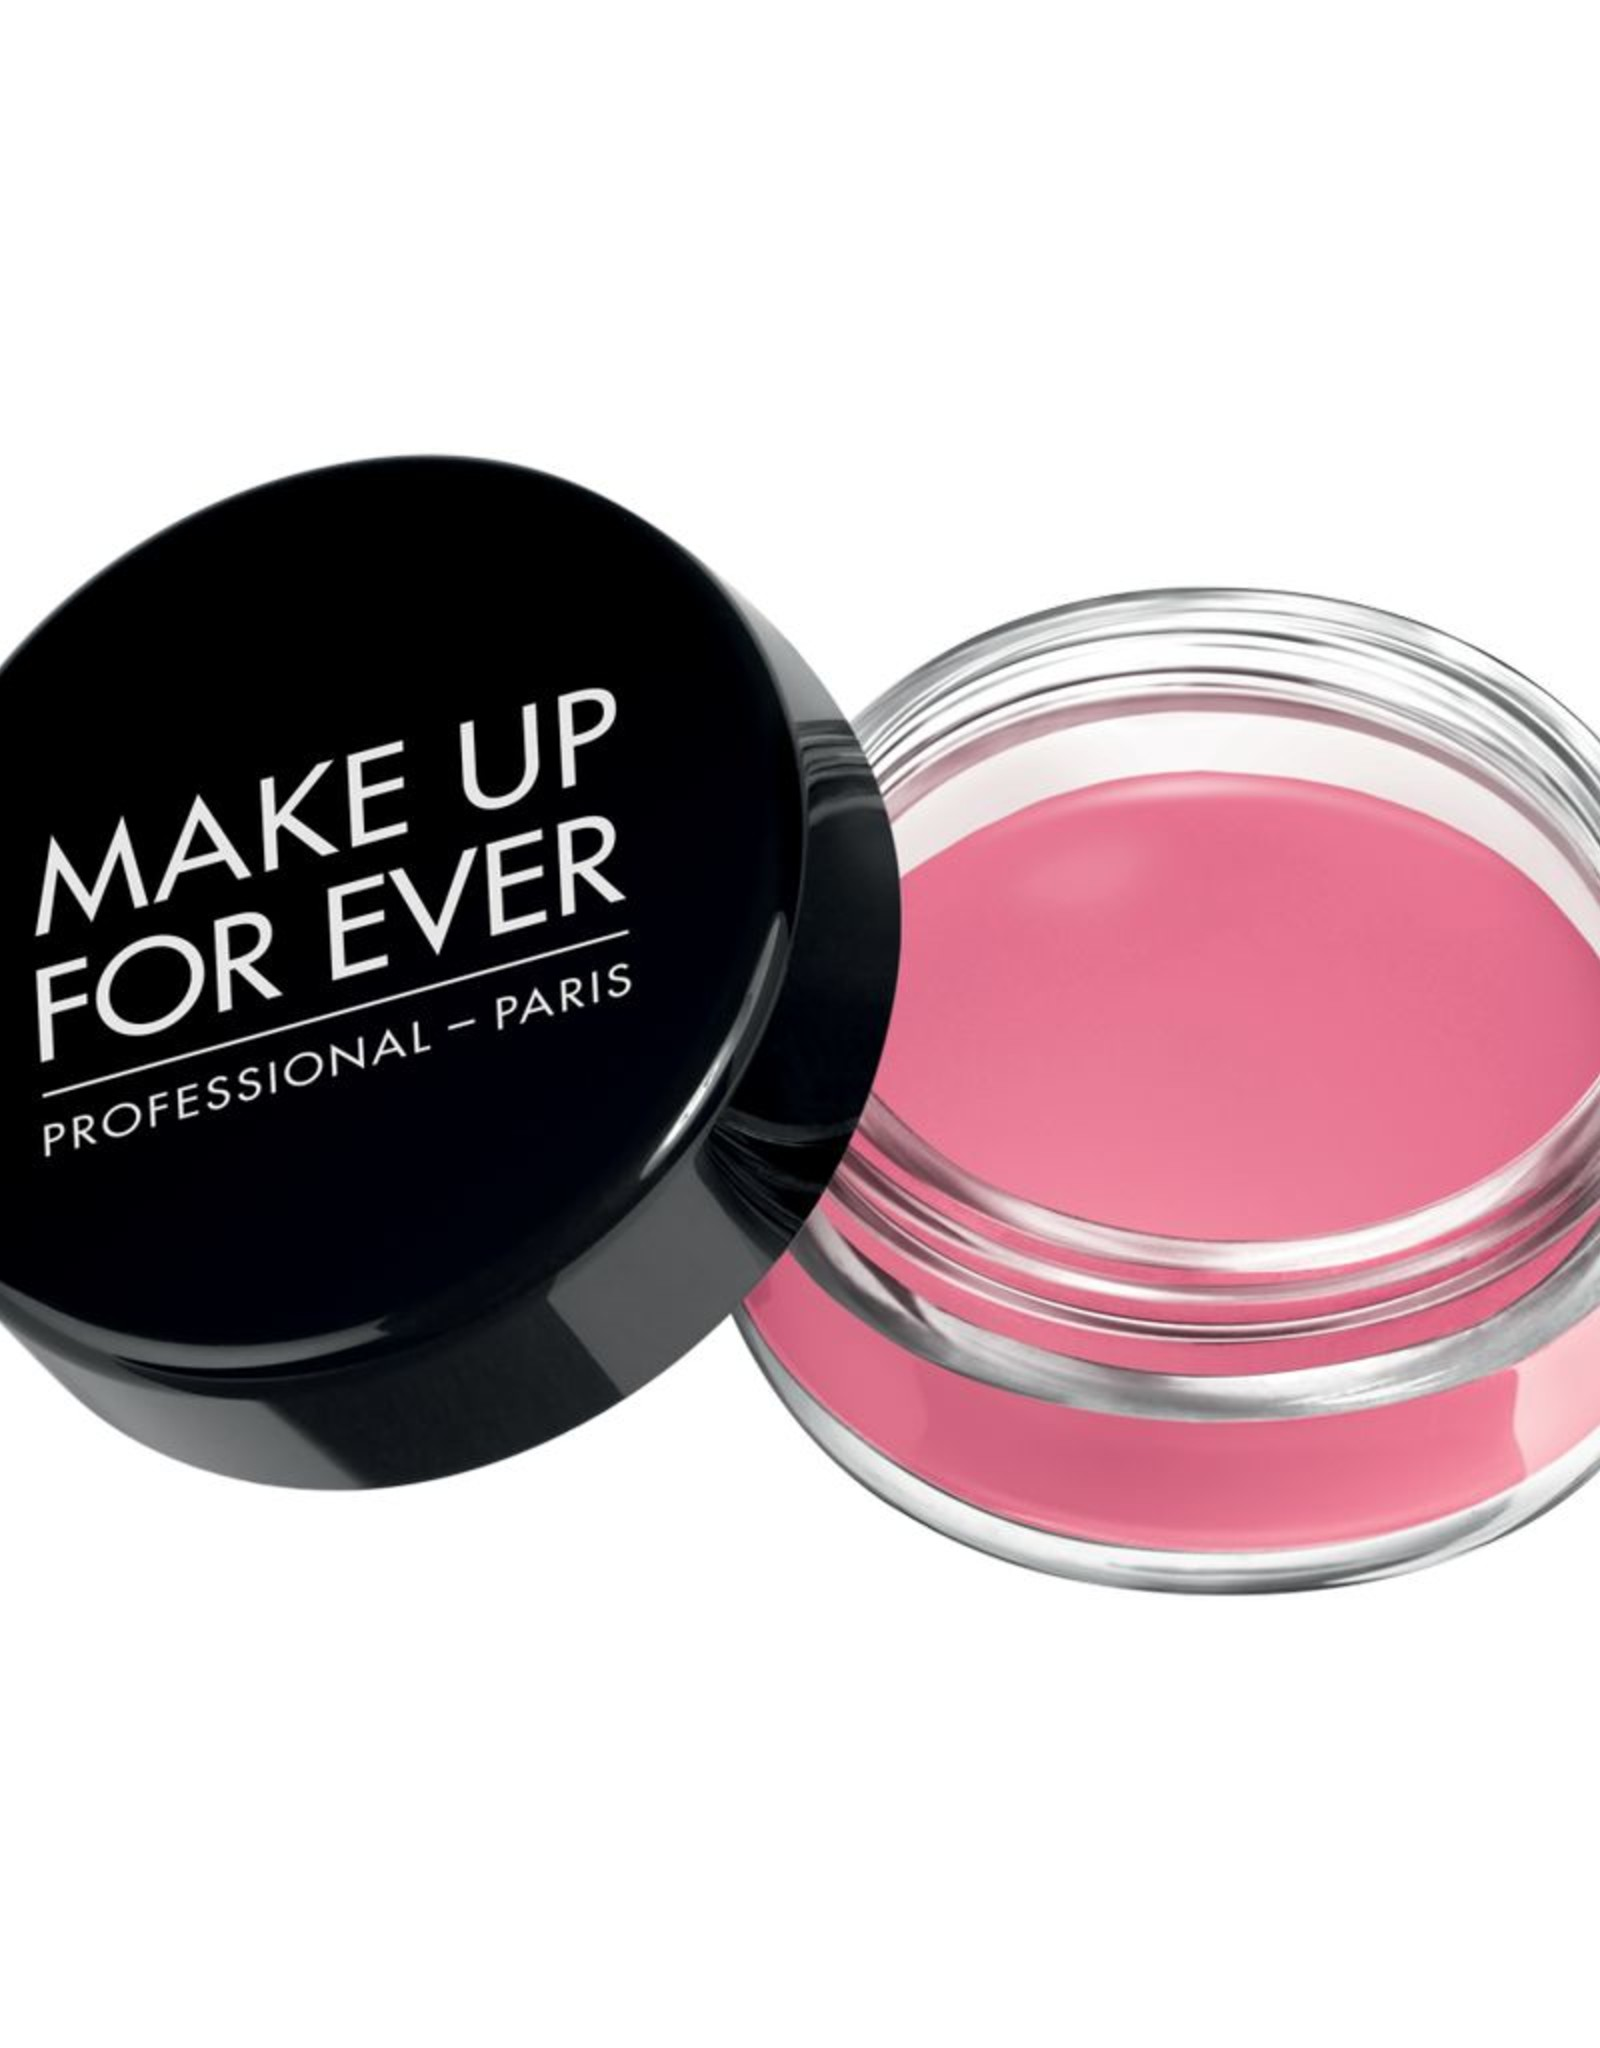 MUFE AQUA CREAM 6g N6 rose frais / fresh pink